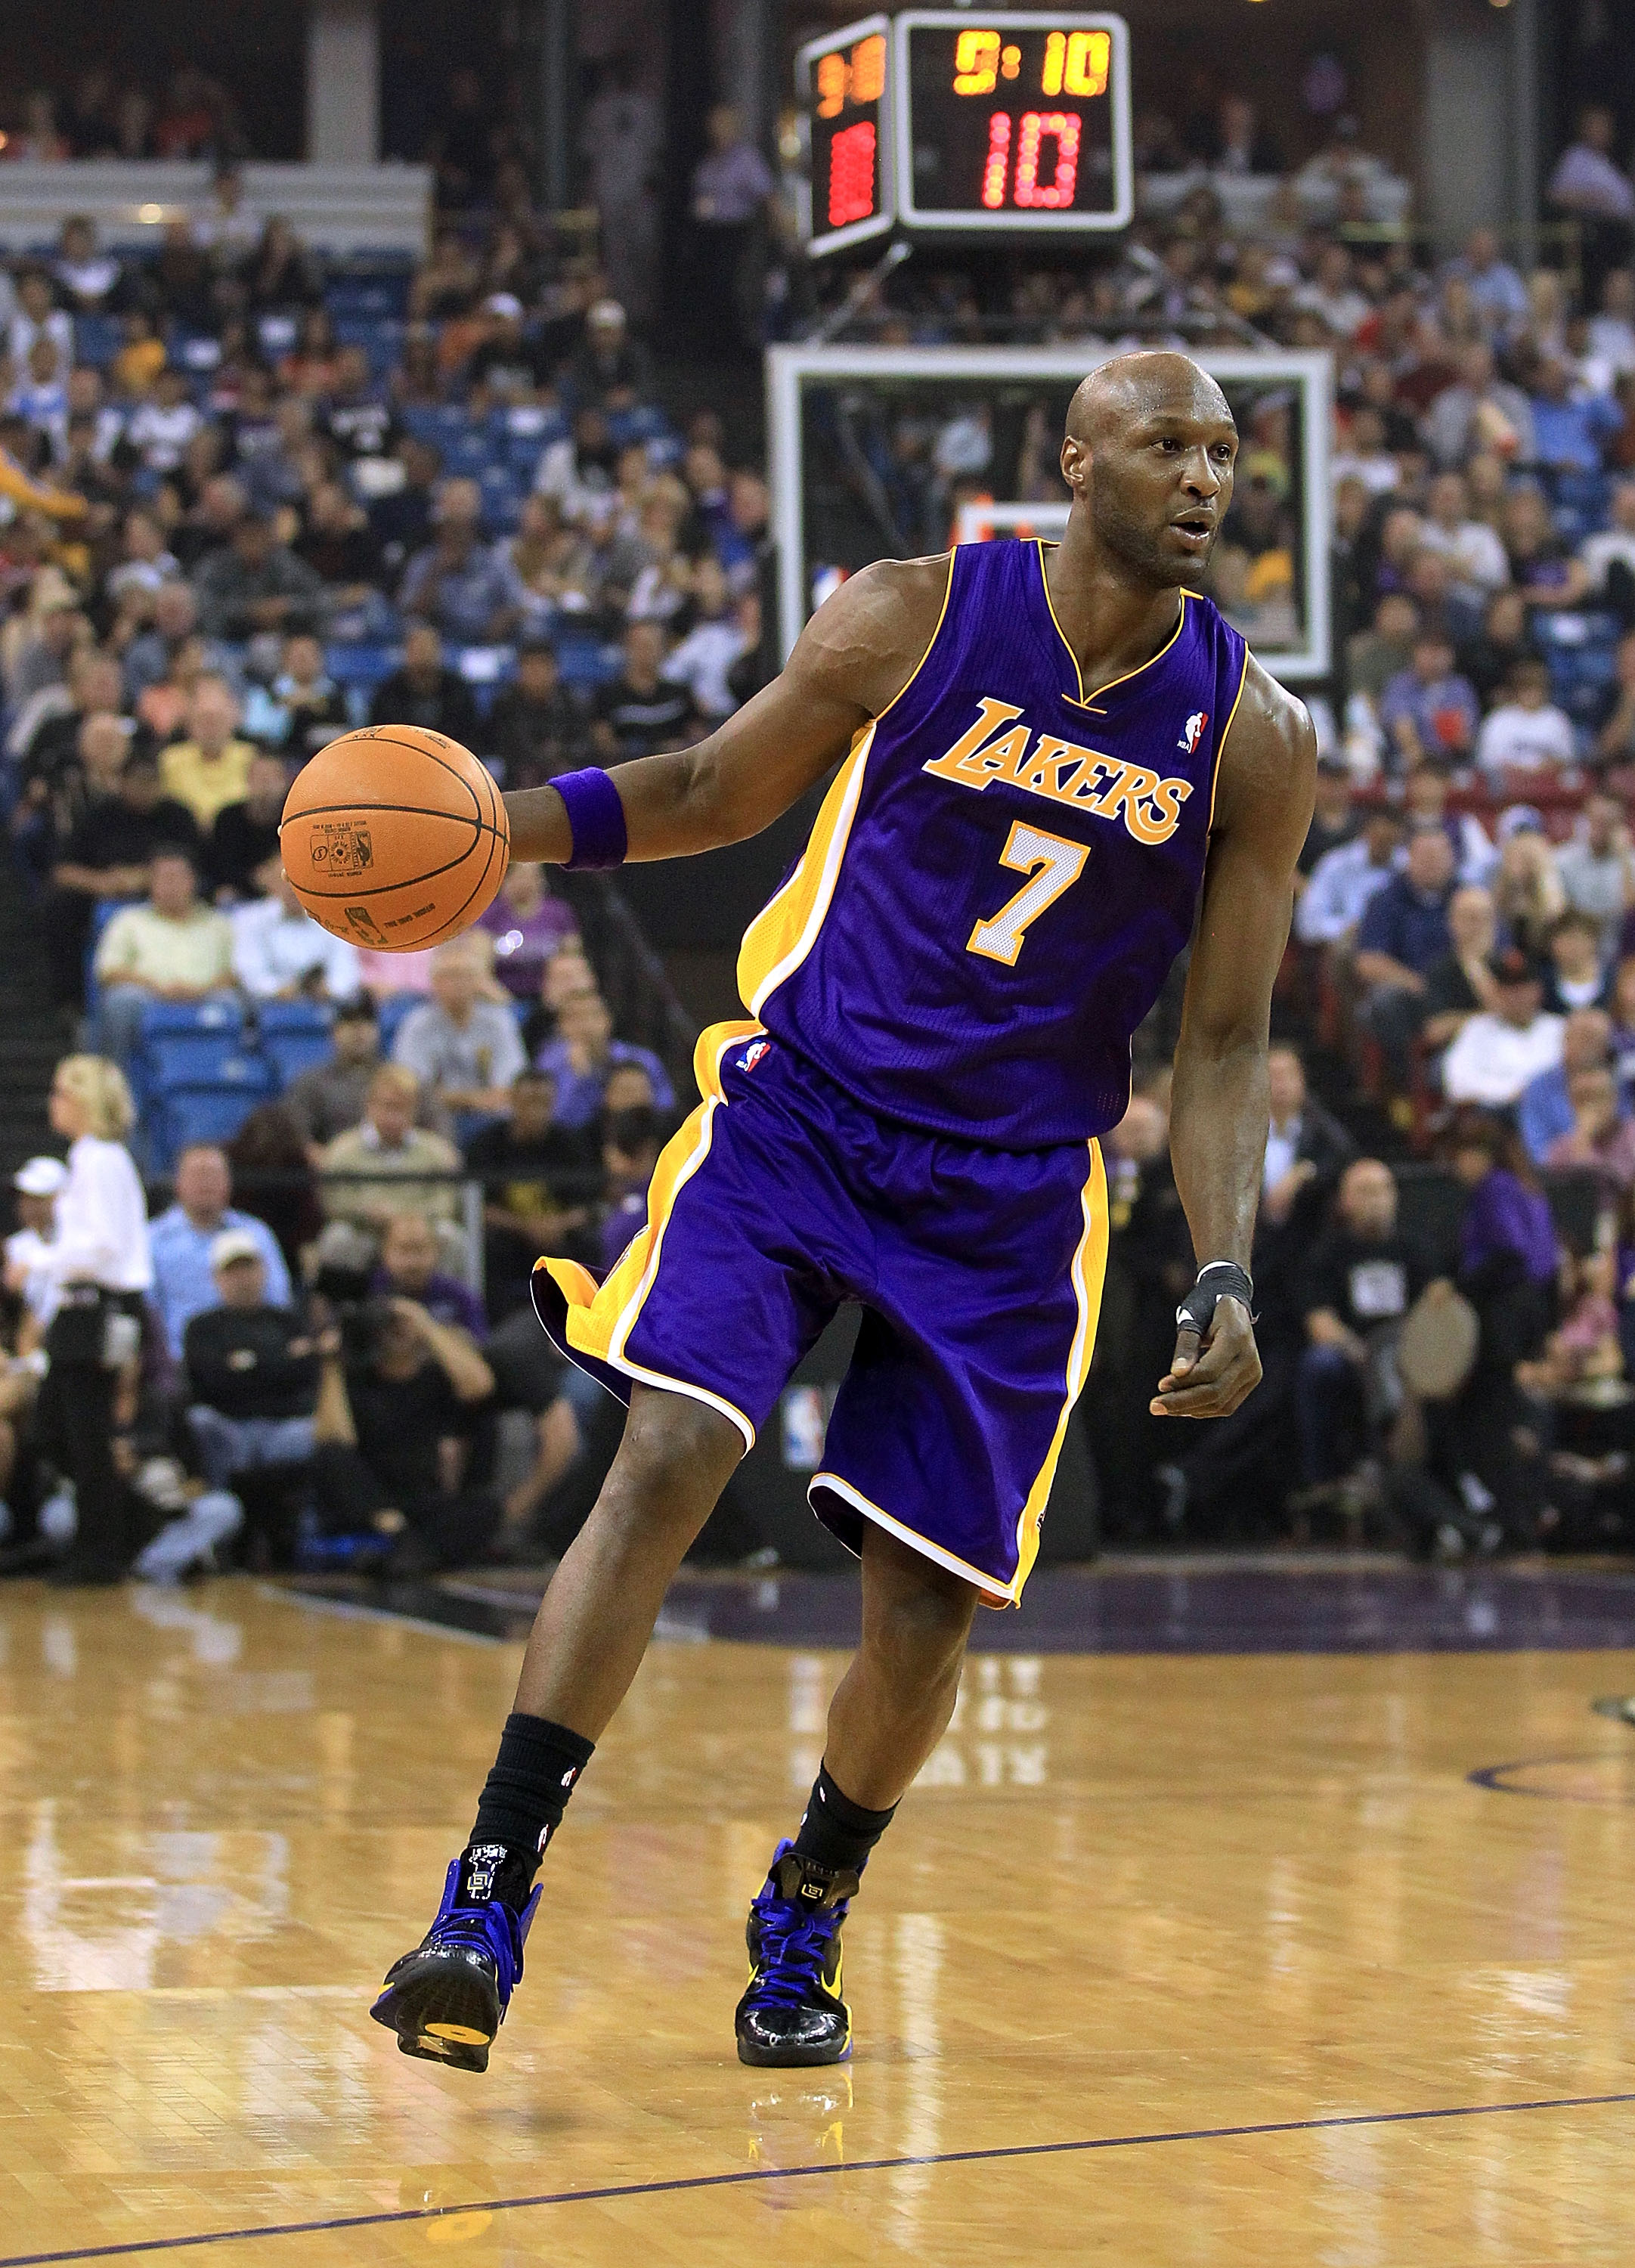 SACRAMENTO, CA - NOVEMBER 03:  Lamar Odom #7 of the Los Angeles Lakers in action against the Sacramento Kings at ARCO Arena on November 3, 2010 in Sacramento, California.  NOTE TO USER: User expressly acknowledges and agrees that, by downloading and or us